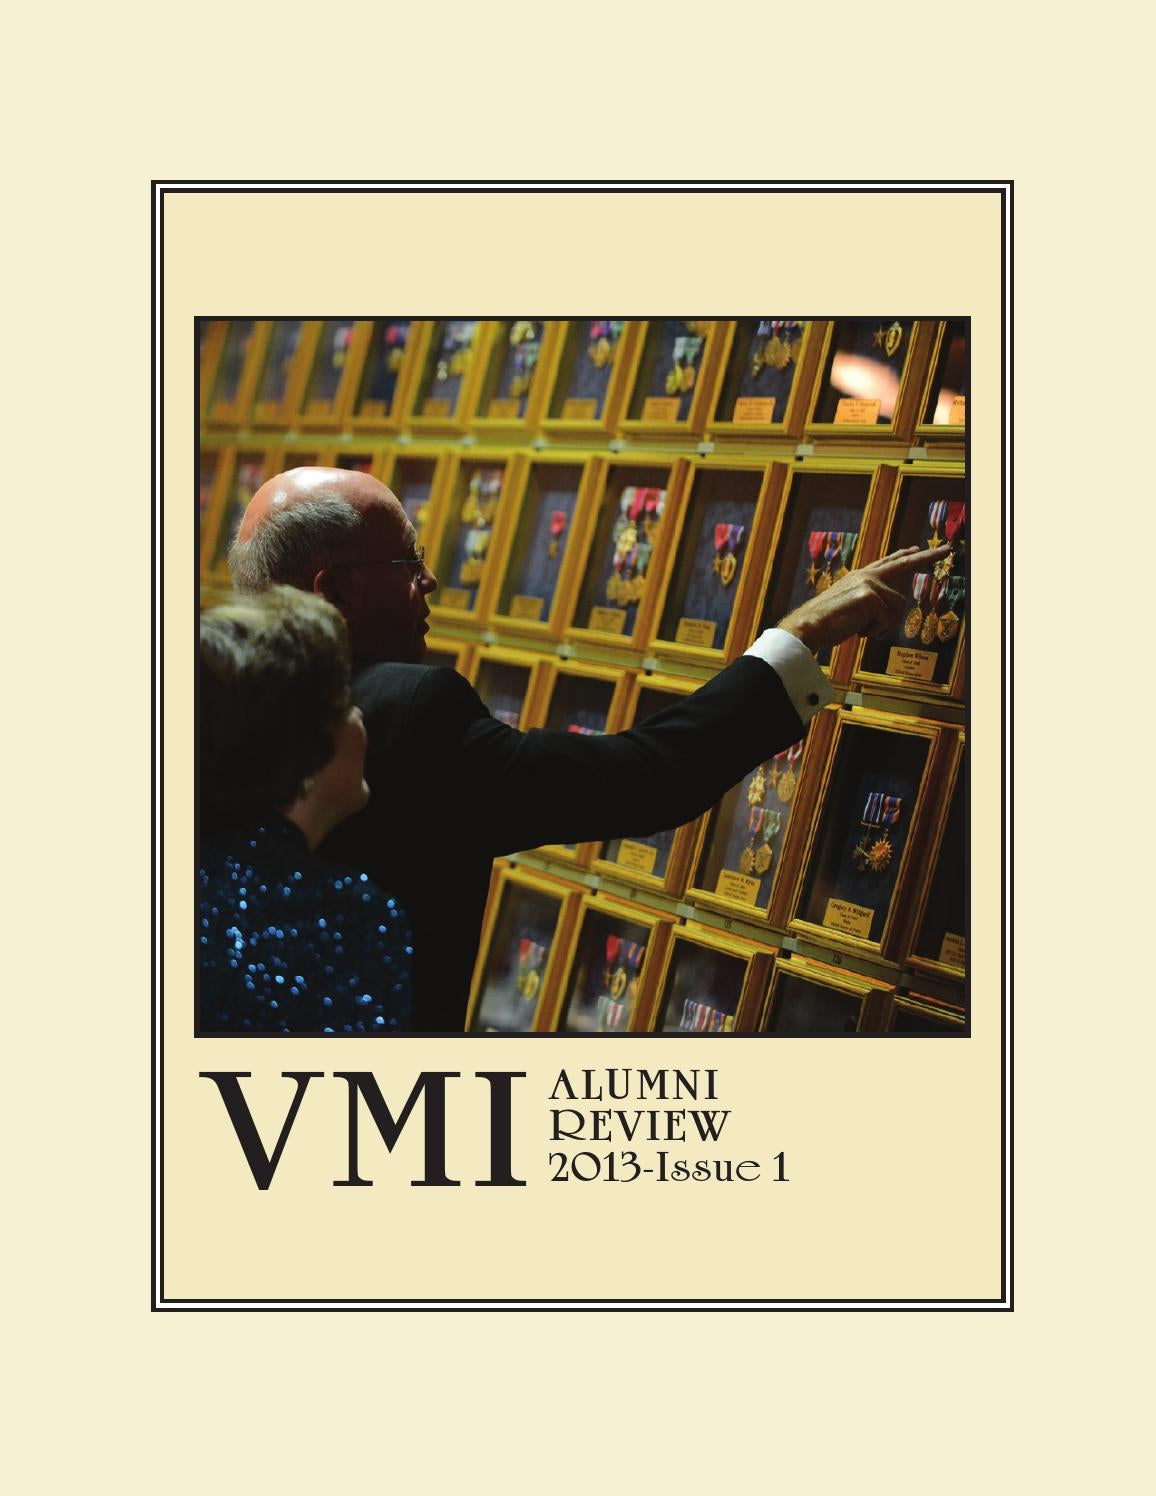 Alumni Review 2013 Issue 1 By VMI Agencies